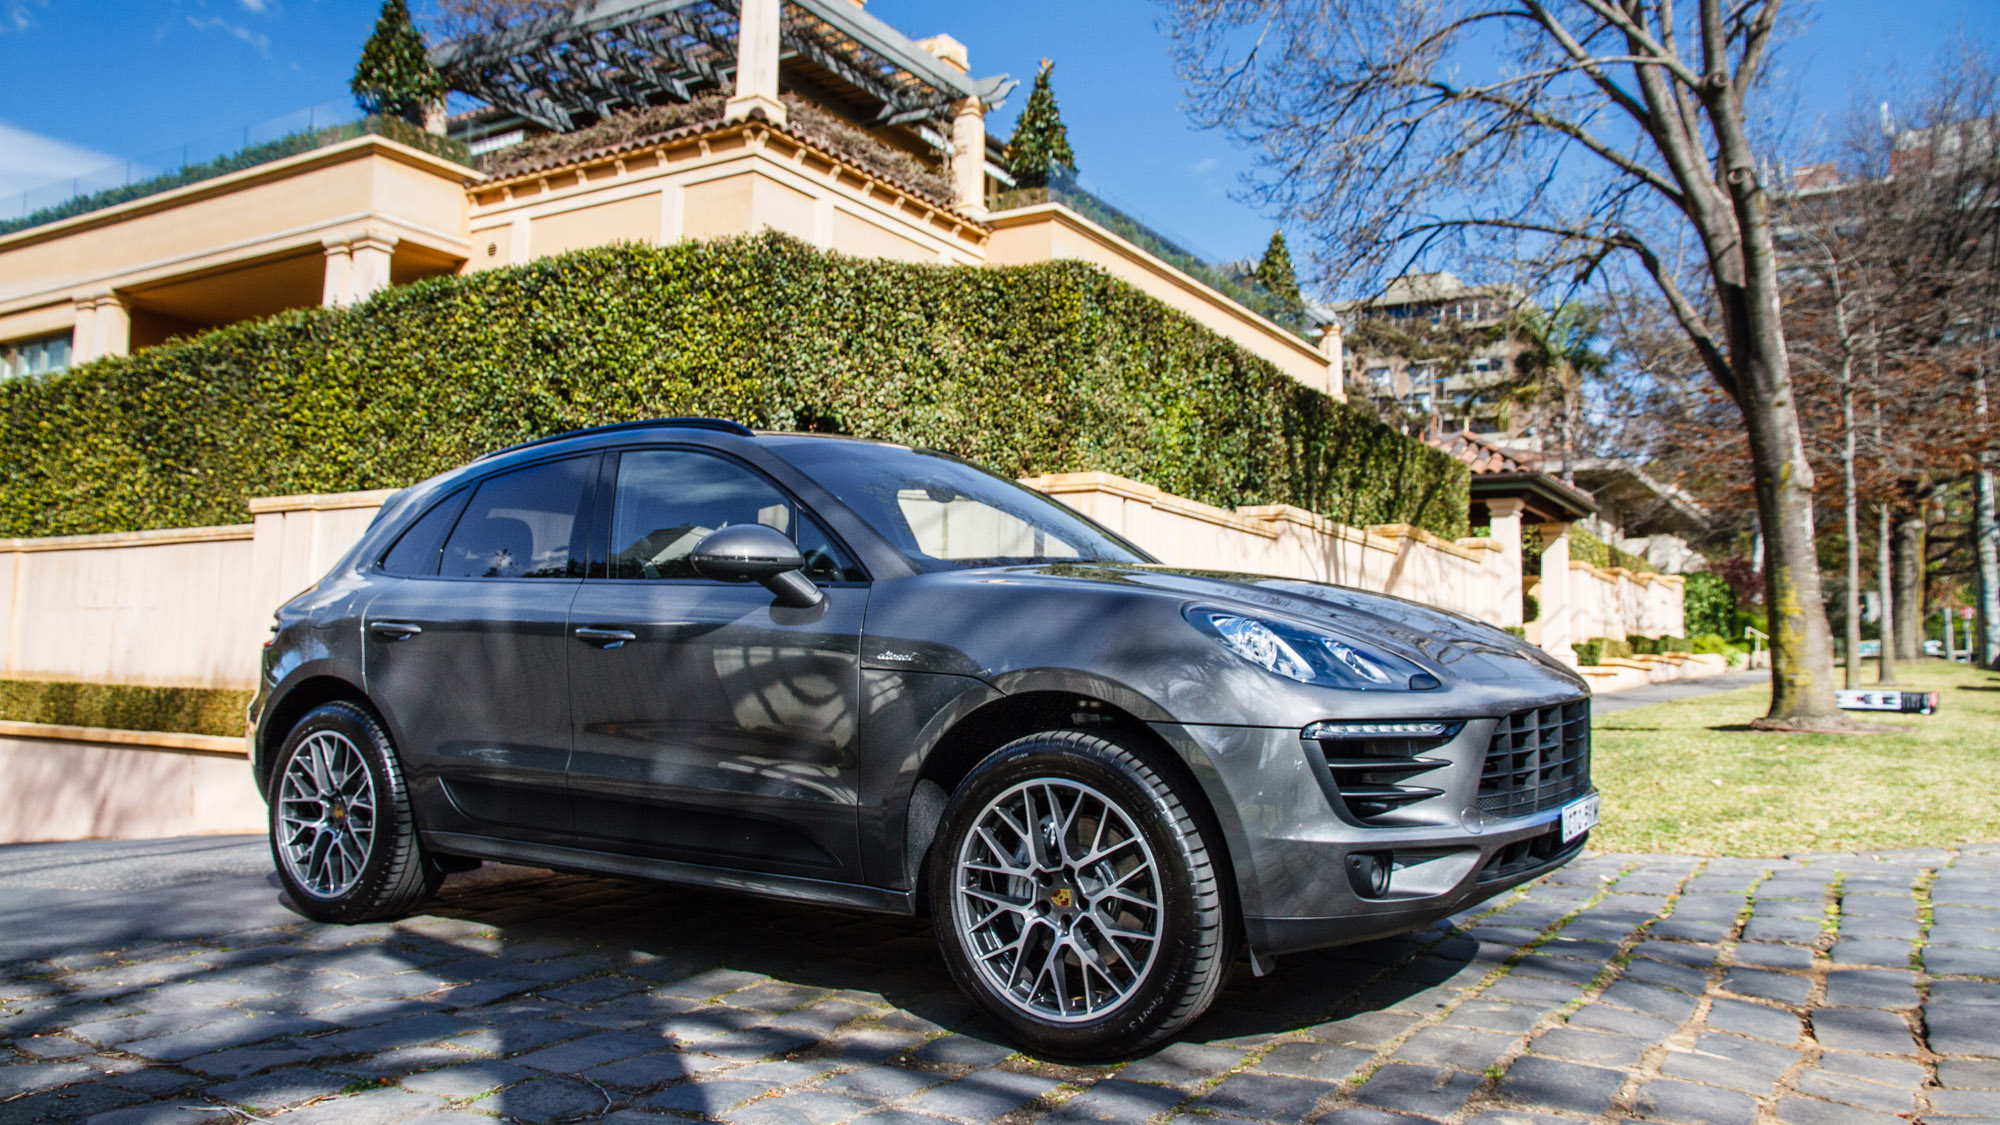 2014 porsche macan s diesel review 1000km melbourne to sydney road trip photos caradvice. Black Bedroom Furniture Sets. Home Design Ideas